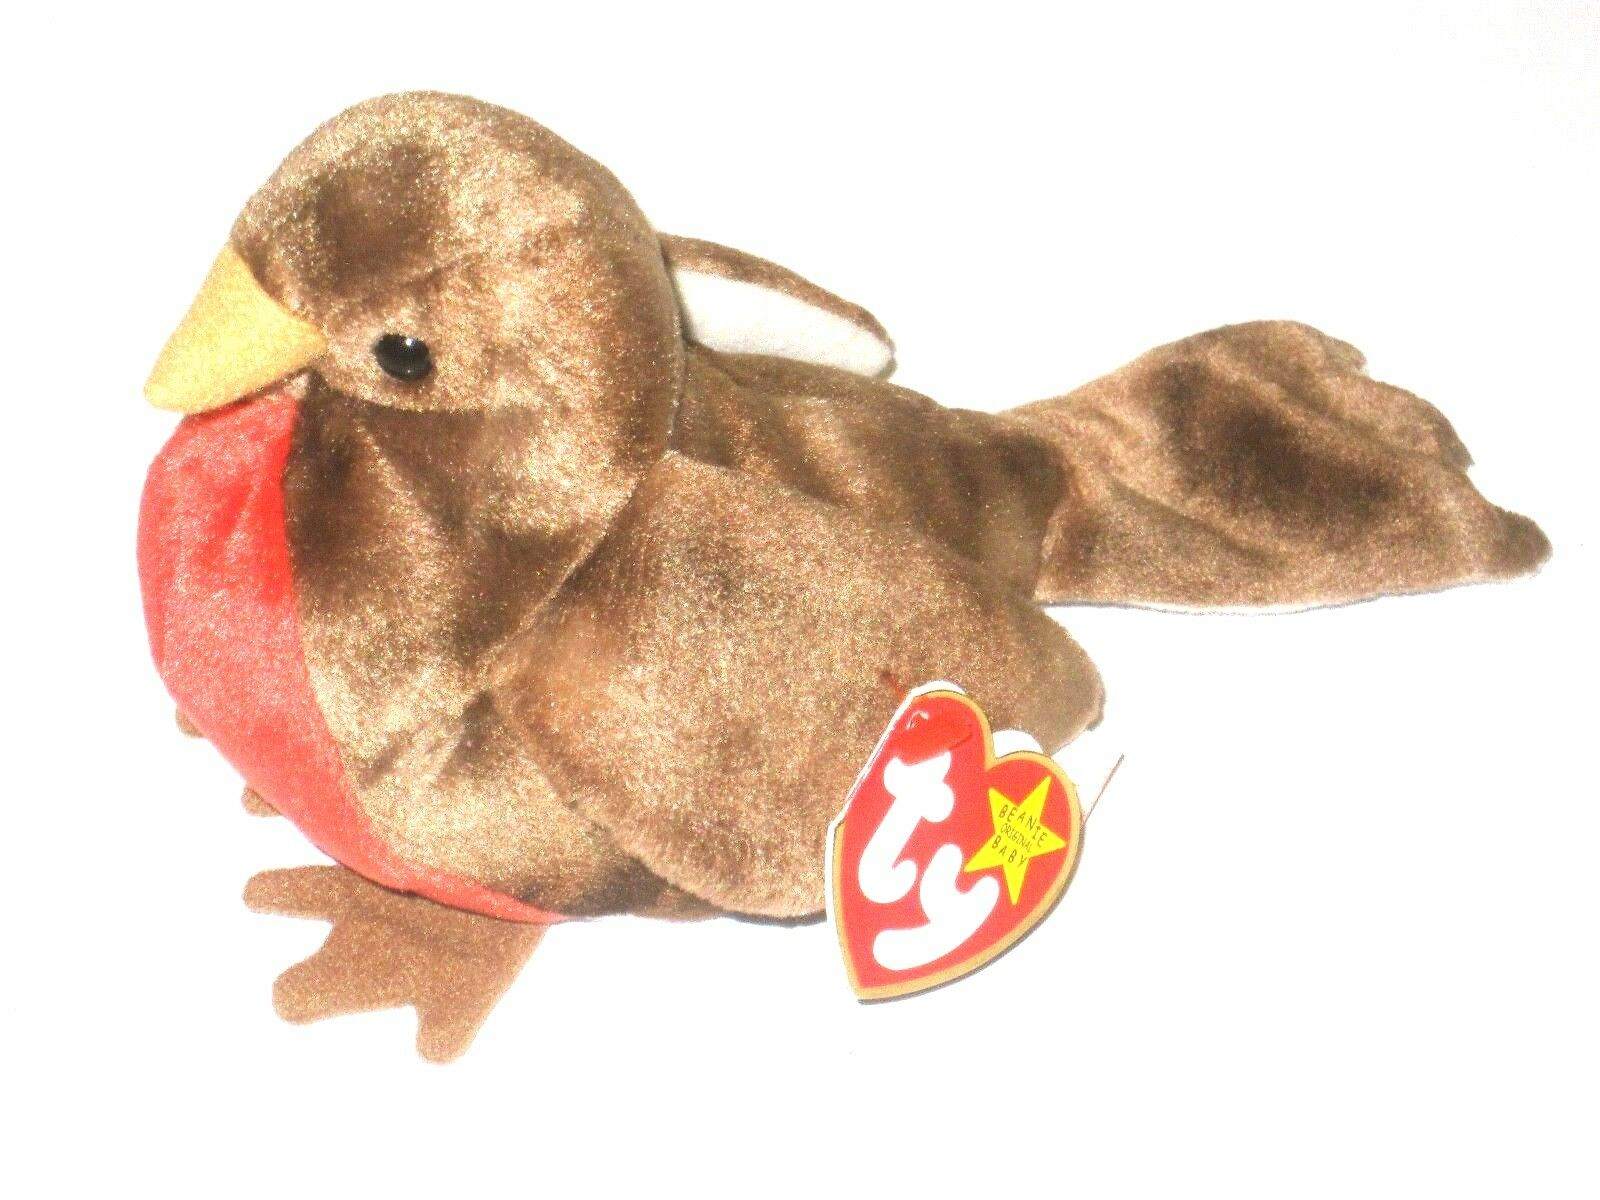 Ty Beanie Baby Early Original P E Pellets Retired 1997 1998 Tag Errors